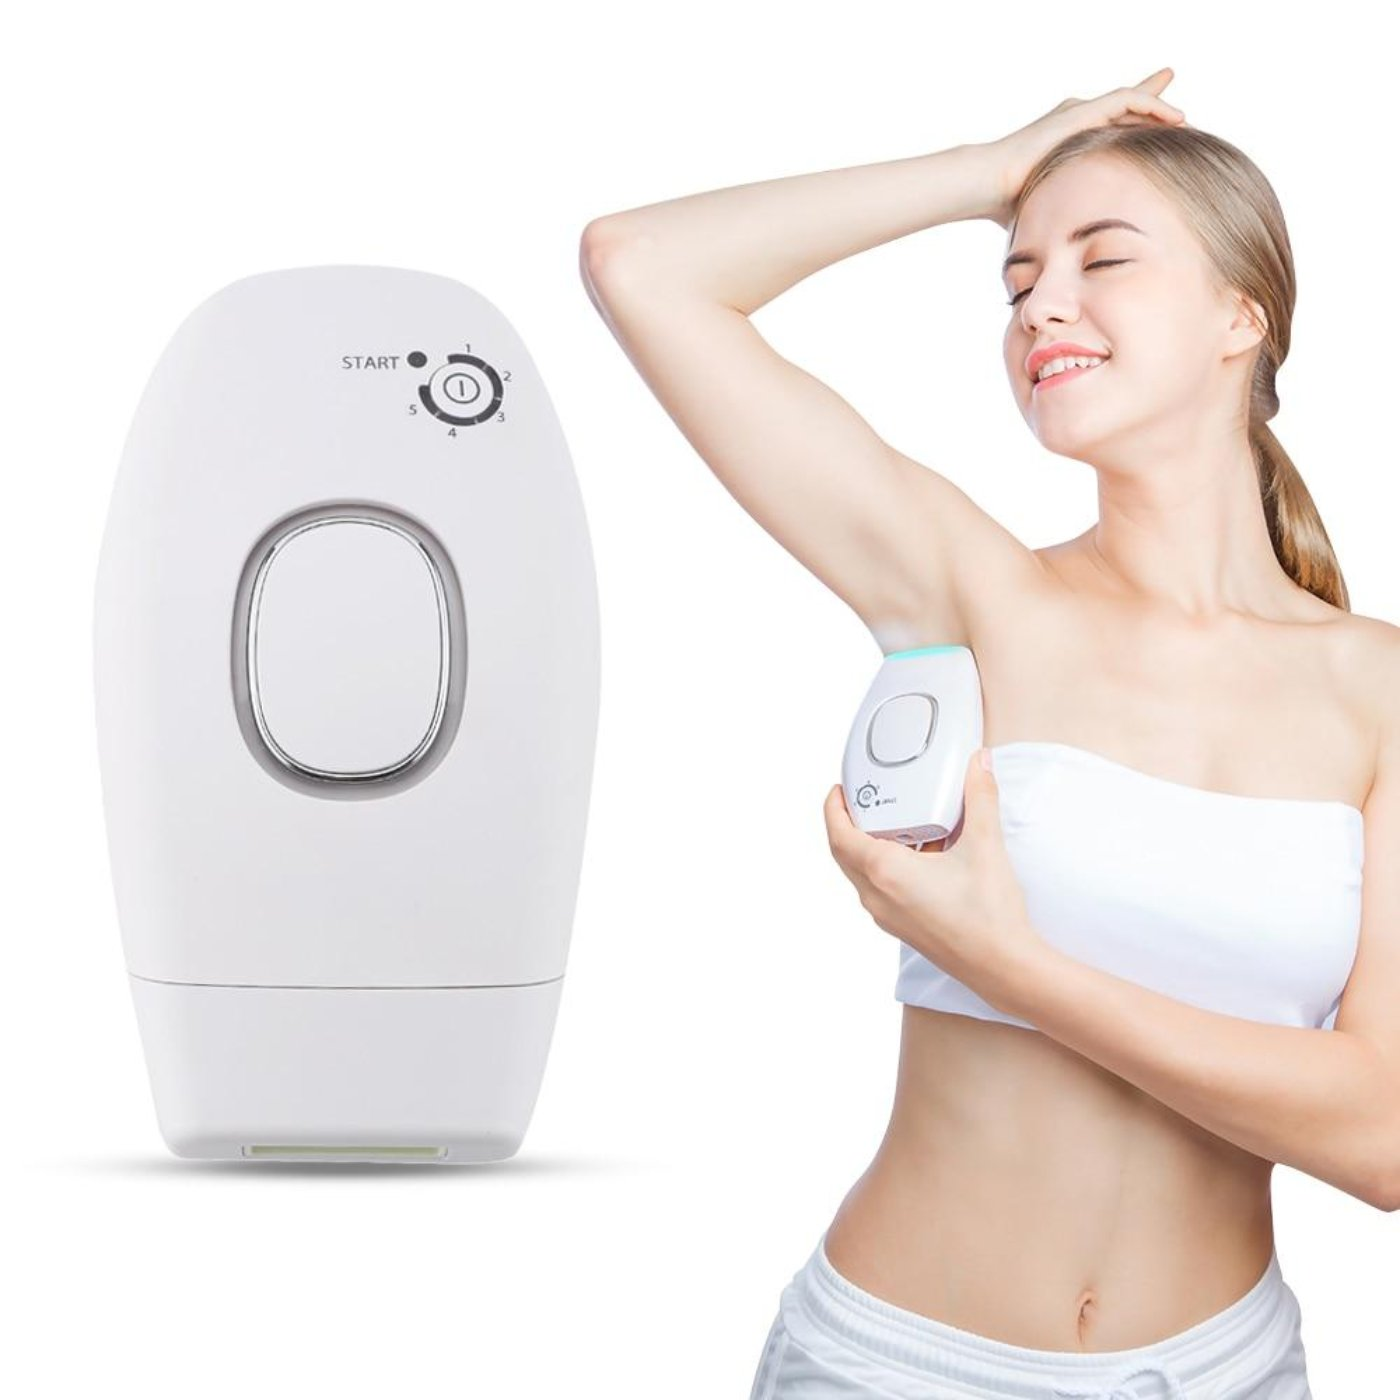 IPL Flash & Go Permanent Laser Hair Remover